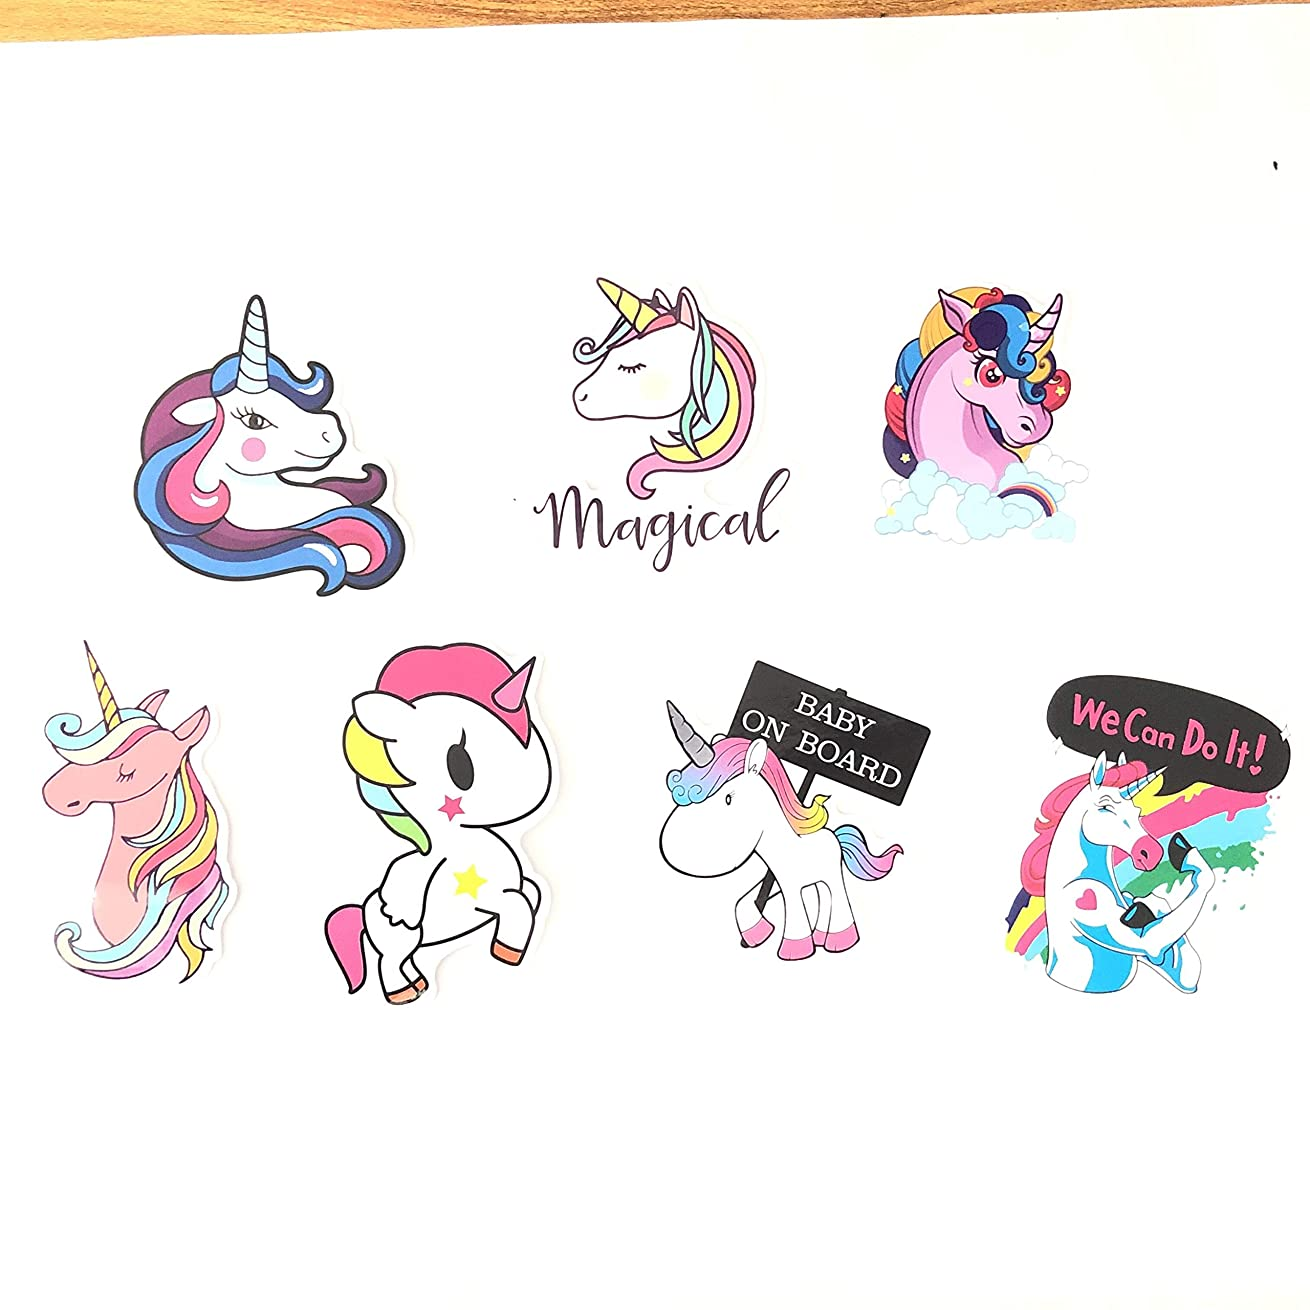 Unicorn Sticker Decal Gift, [14pcs] Cool Laptop Sticker for iPhone MacBook Car Motorcycle Luggage Water Bottle DIY Bumper Bomb Vinyl Decal Stickers for Guy Skateboarding Accessories